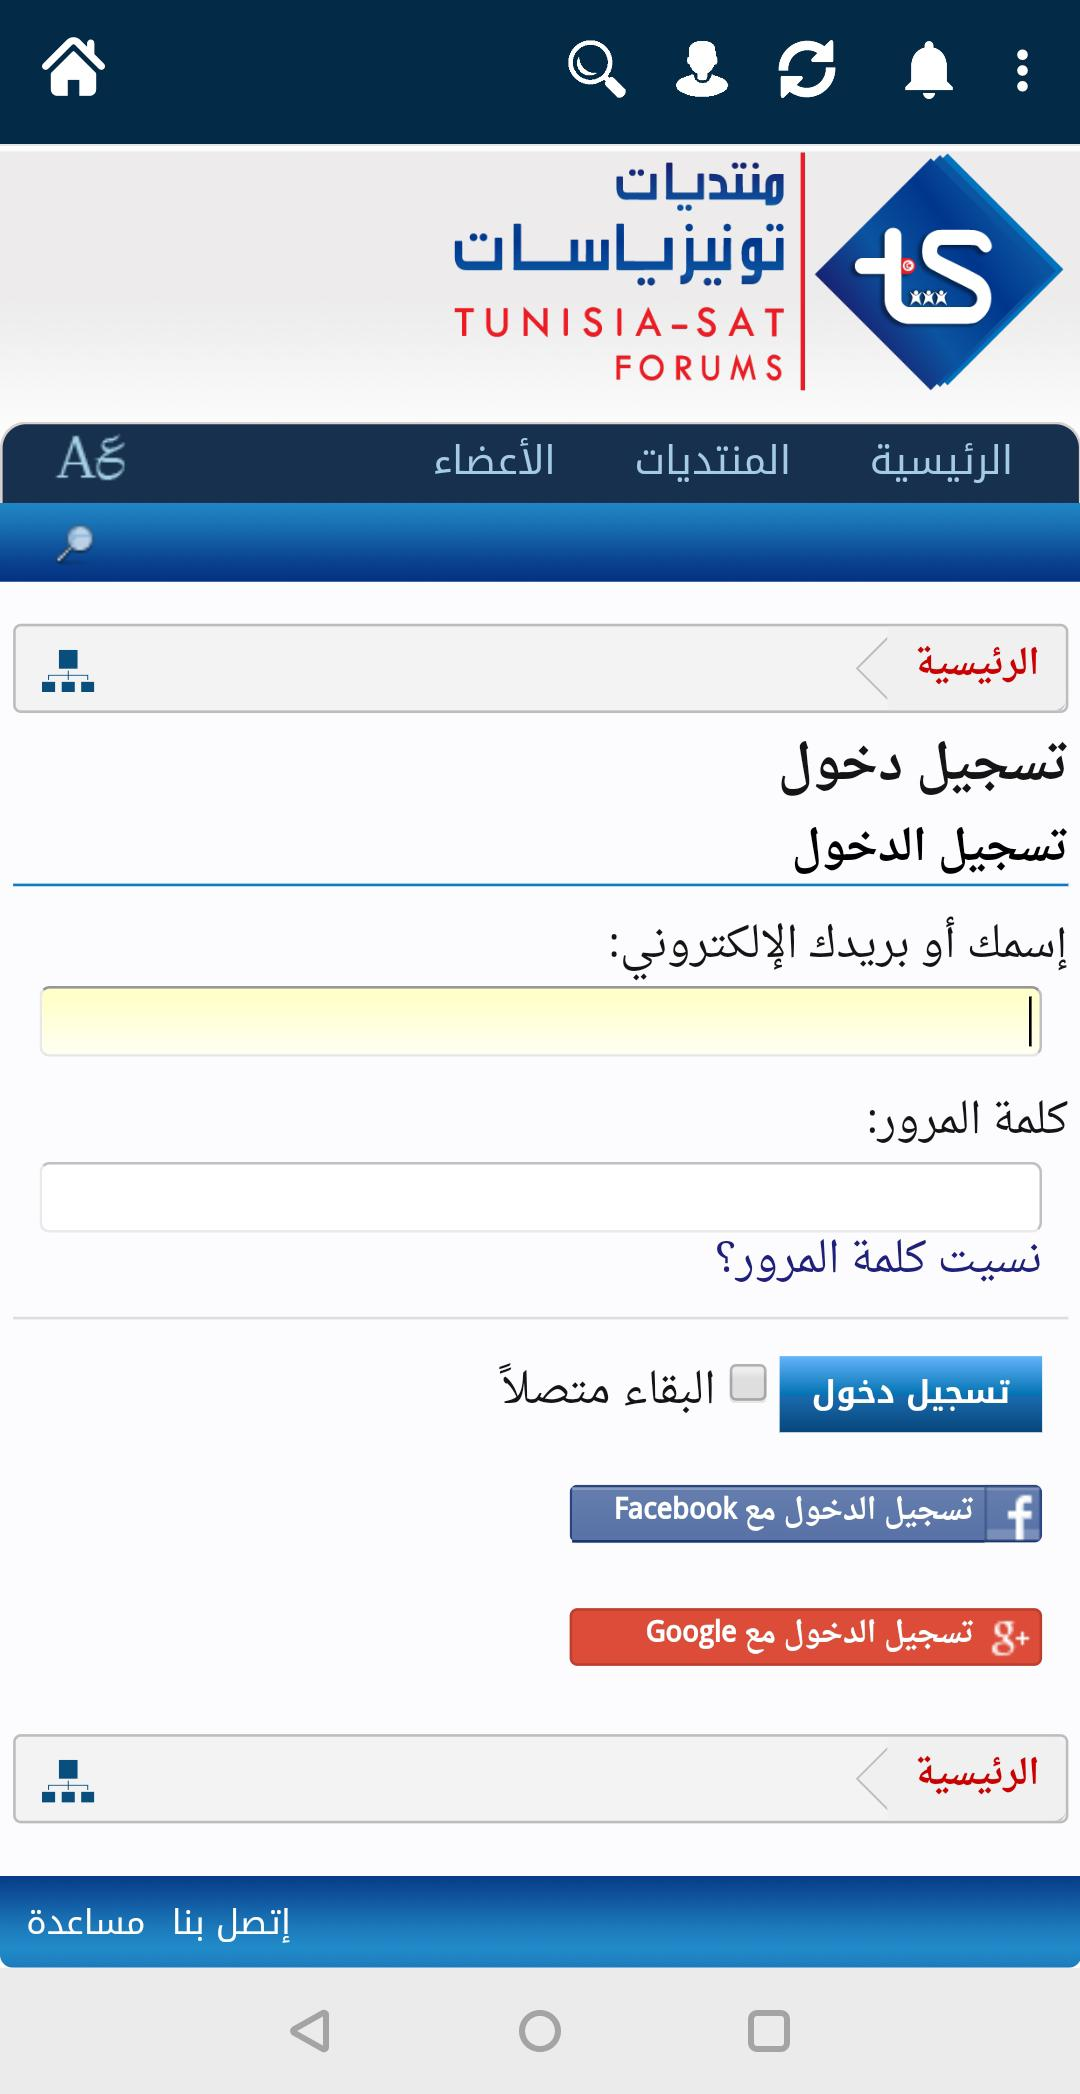 Tunisia-sat for Android - APK Download